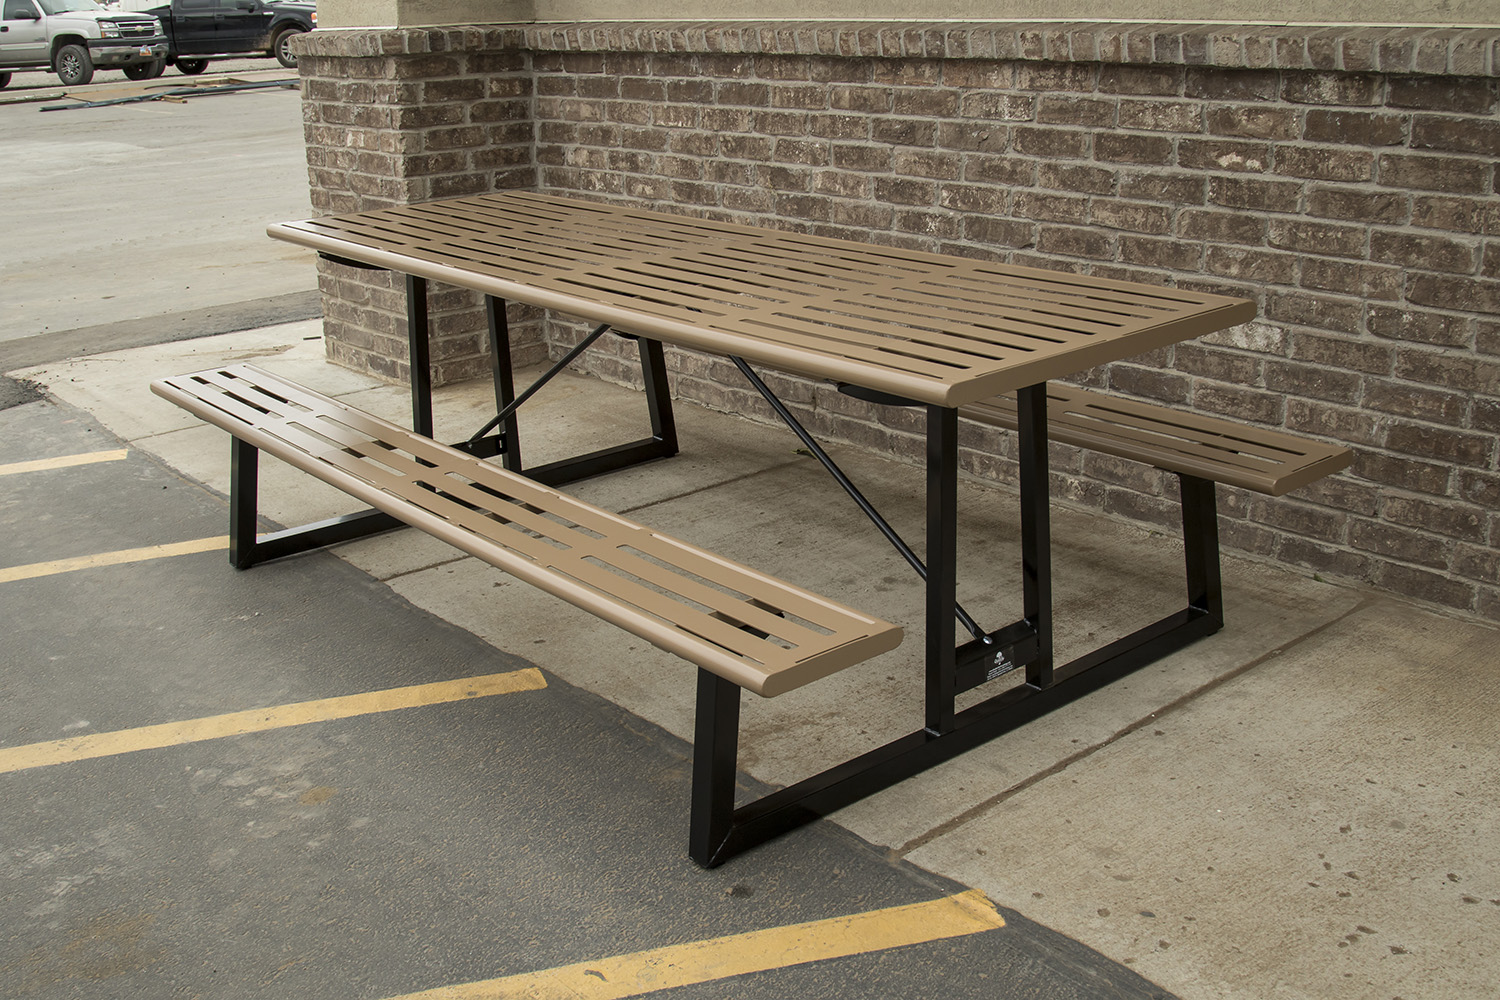 What makes the metal picnic table so durable